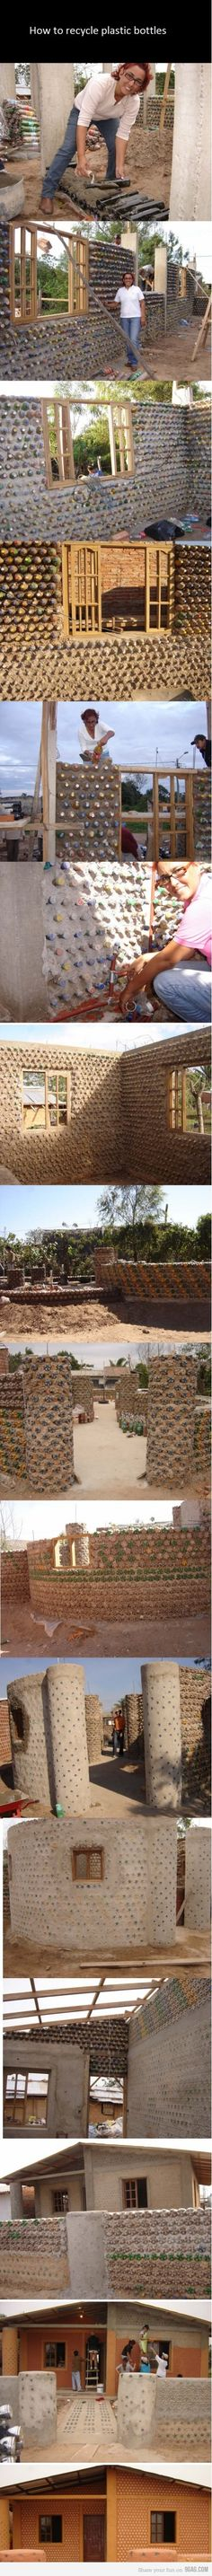 Using plastic bottles to build a home! Now THAT is a neat recycling idea!!!